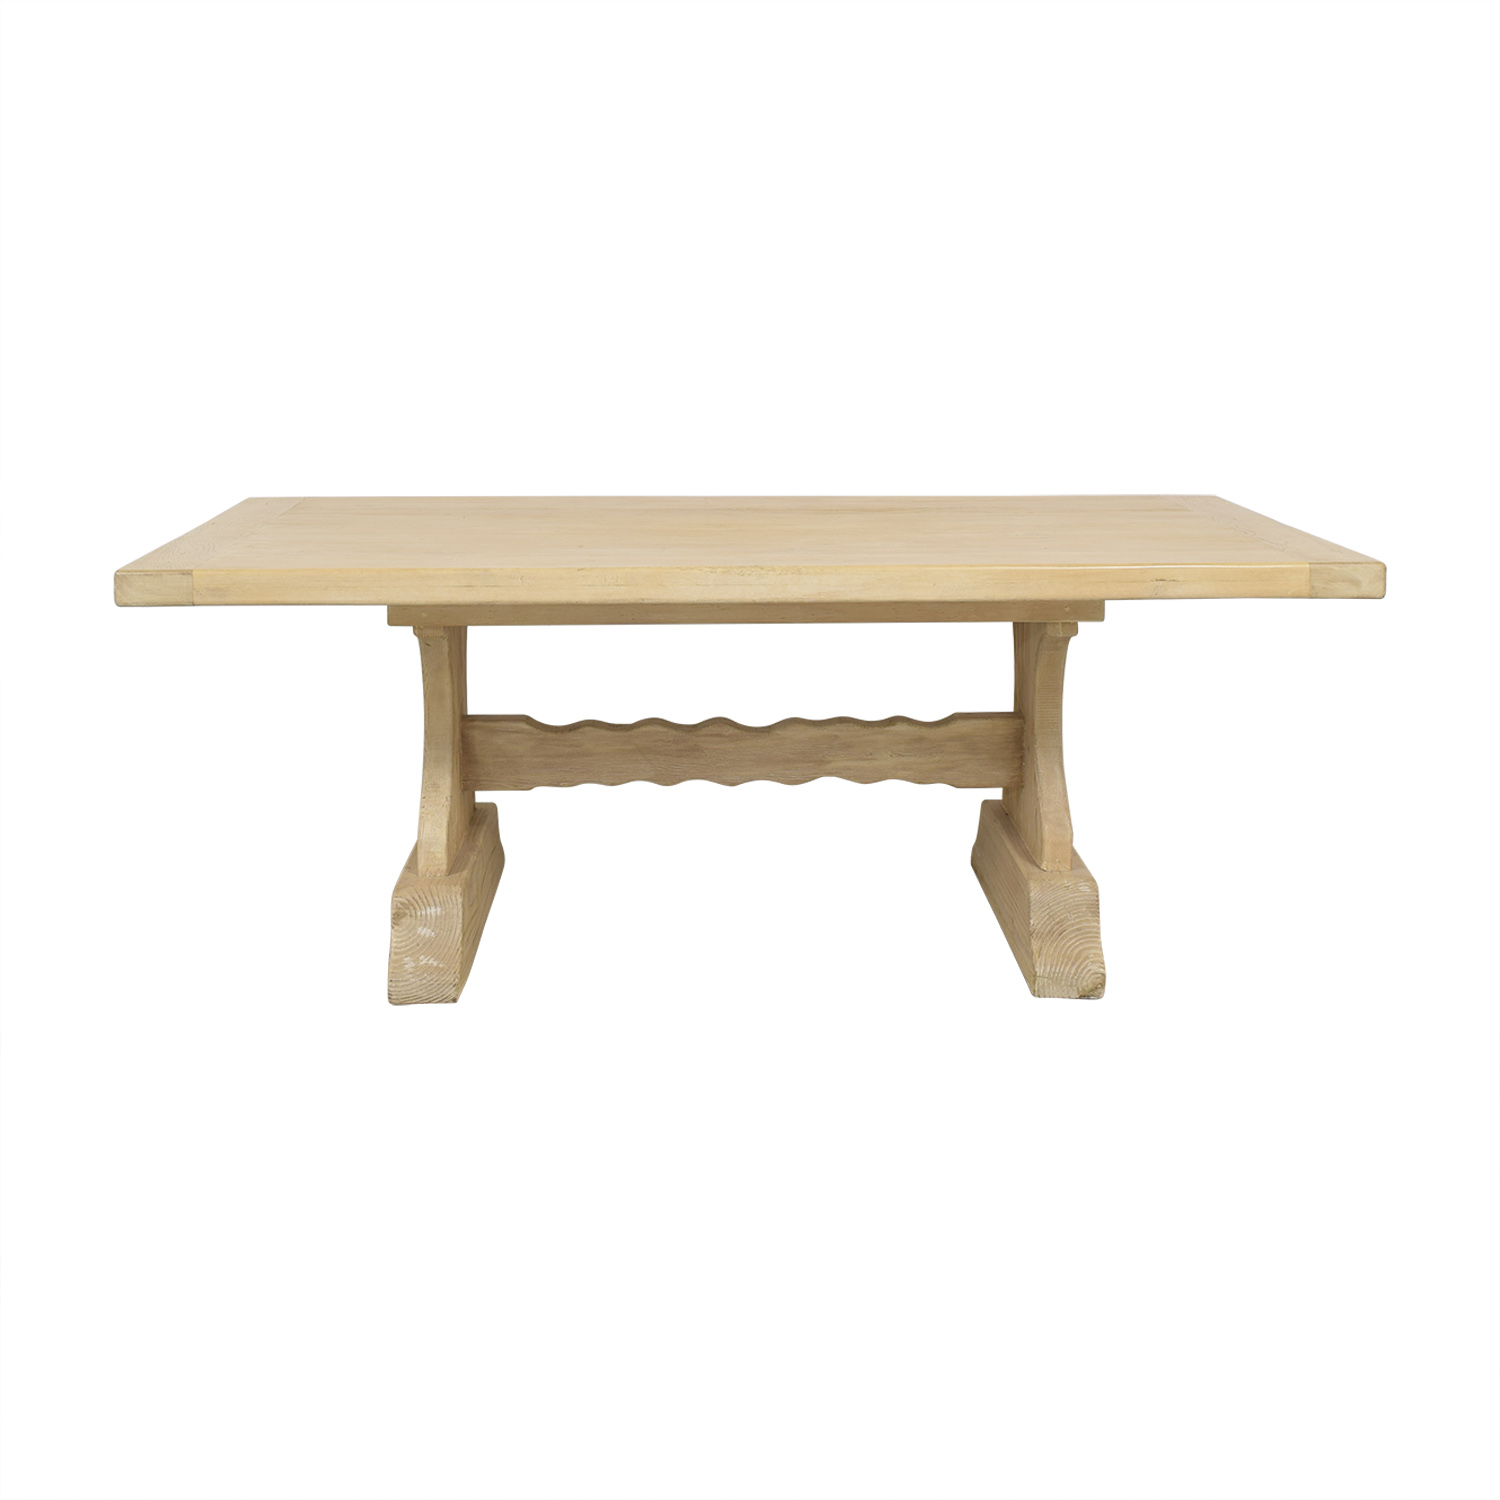 81 Off Kreiss Kreiss Santa Fe Dining Table Tables